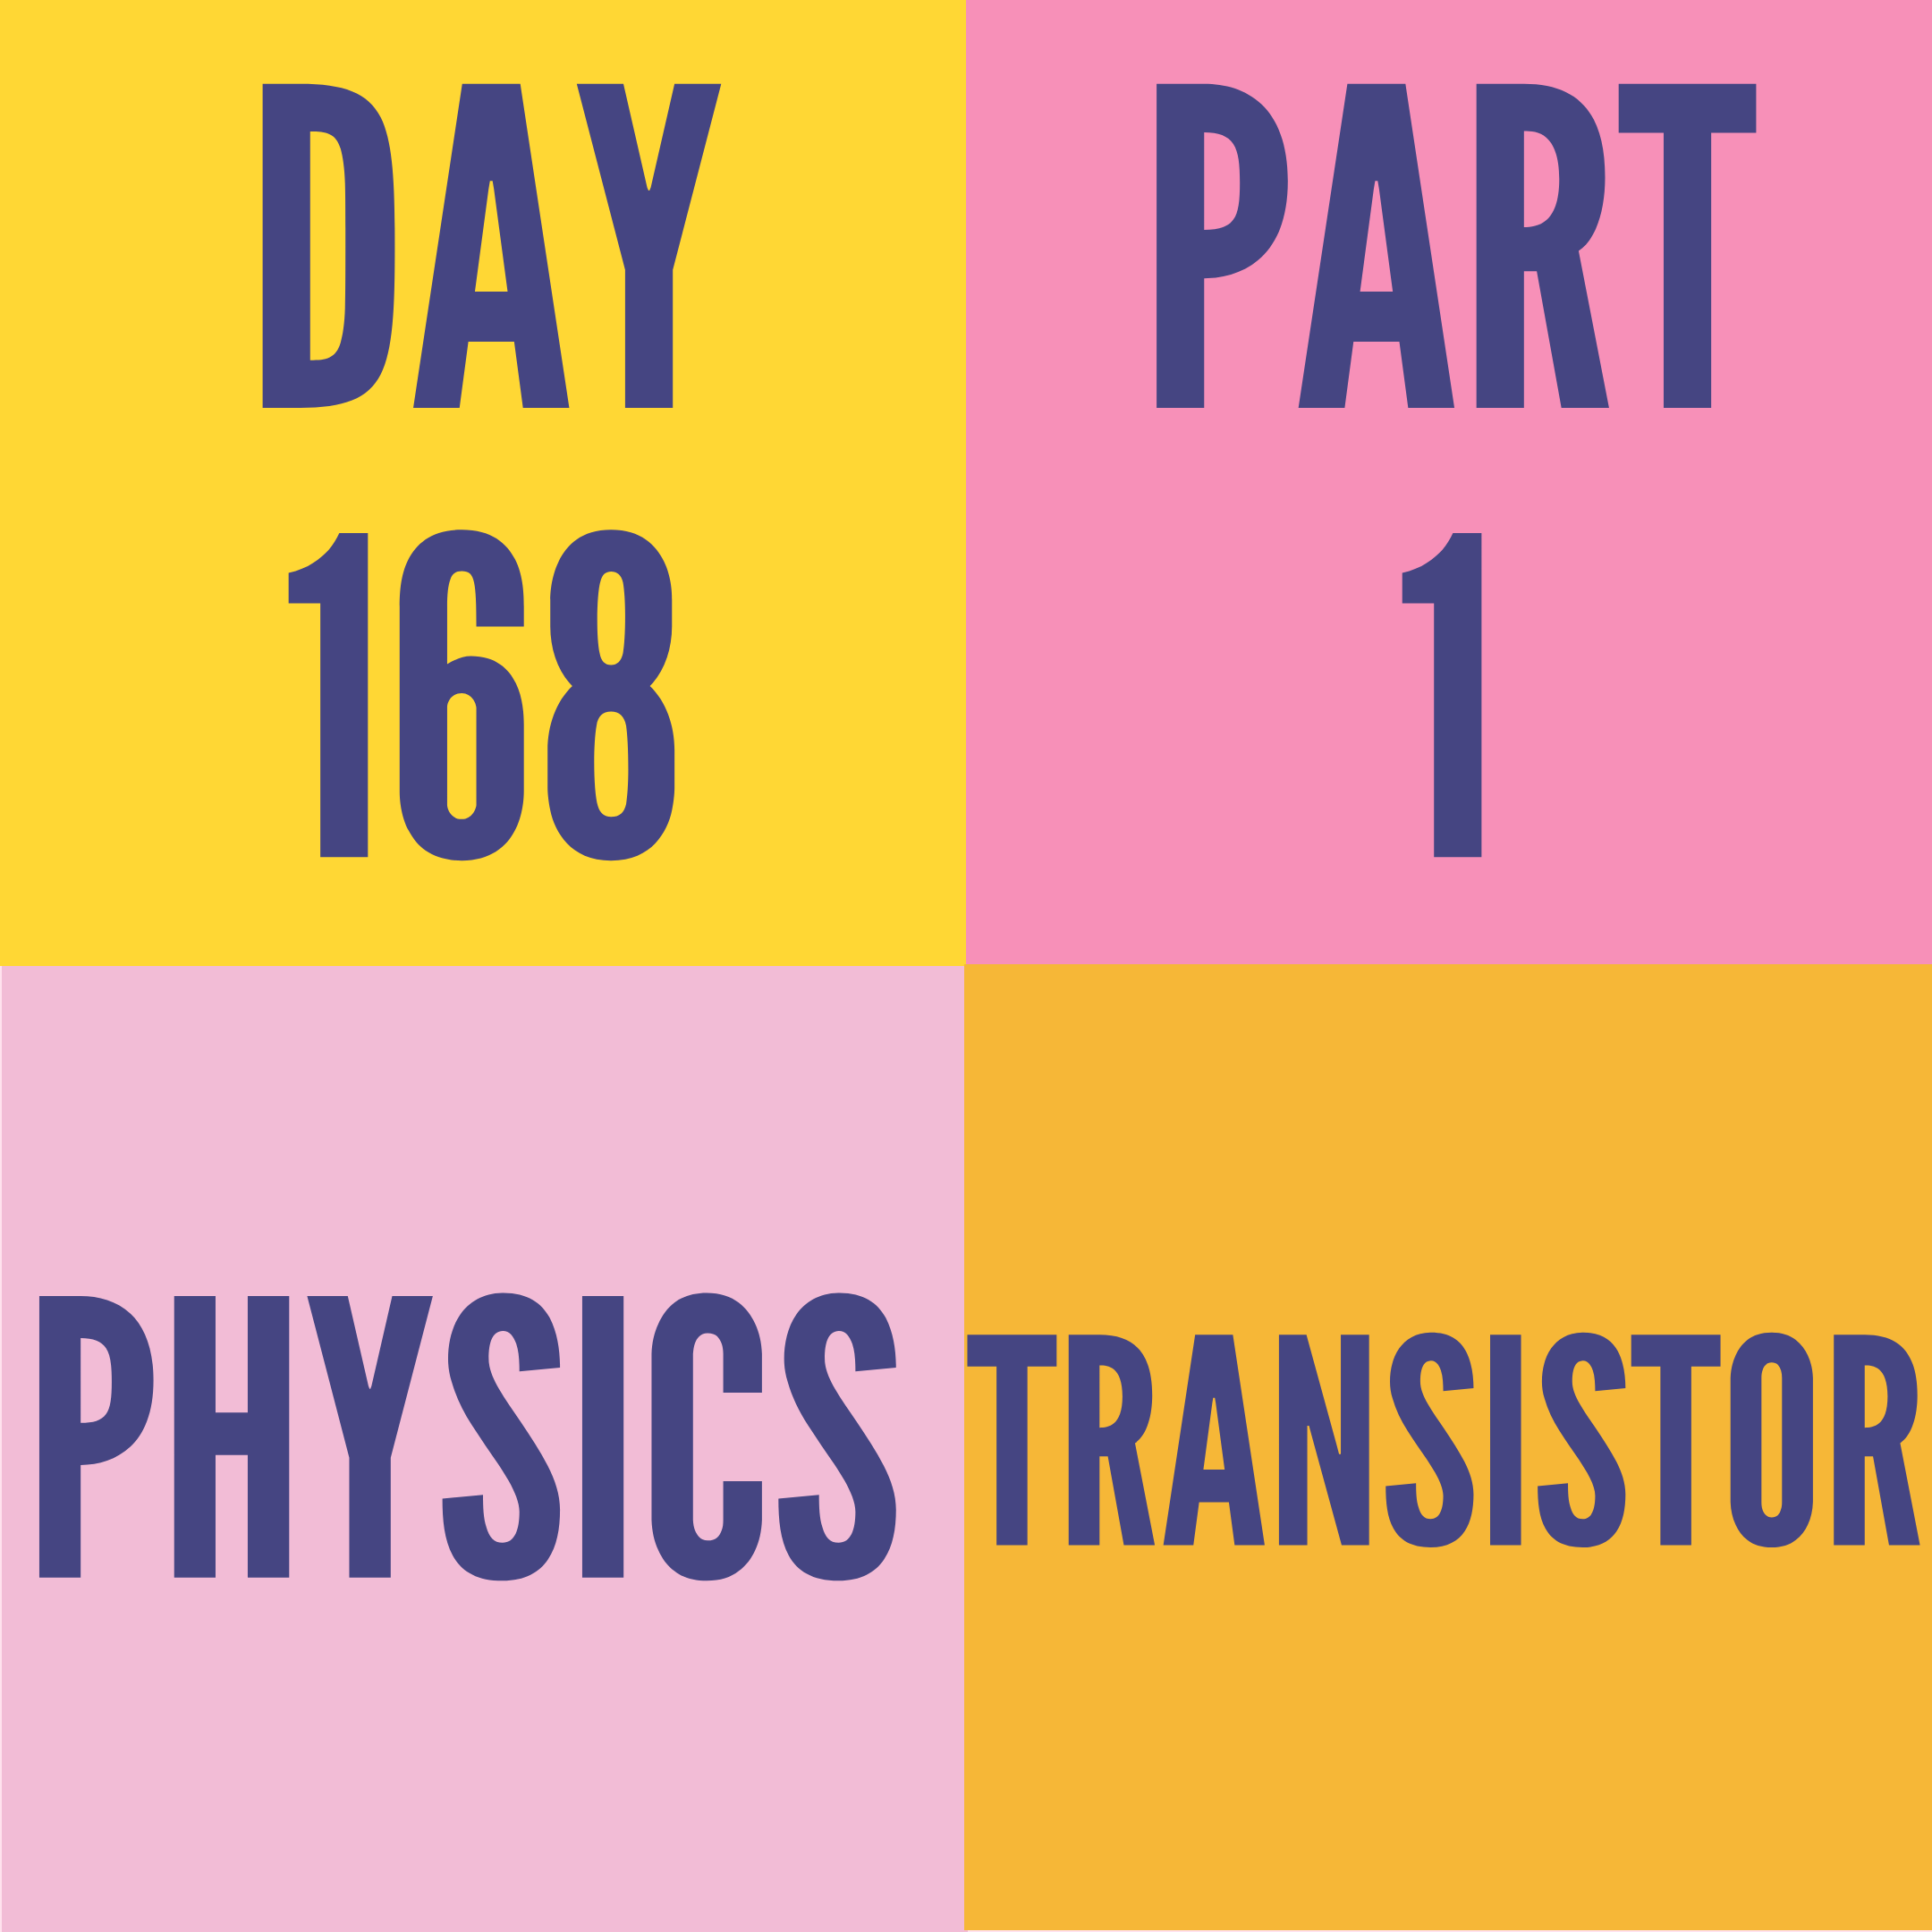 DAY-168 PART-1 TRANSISTOR